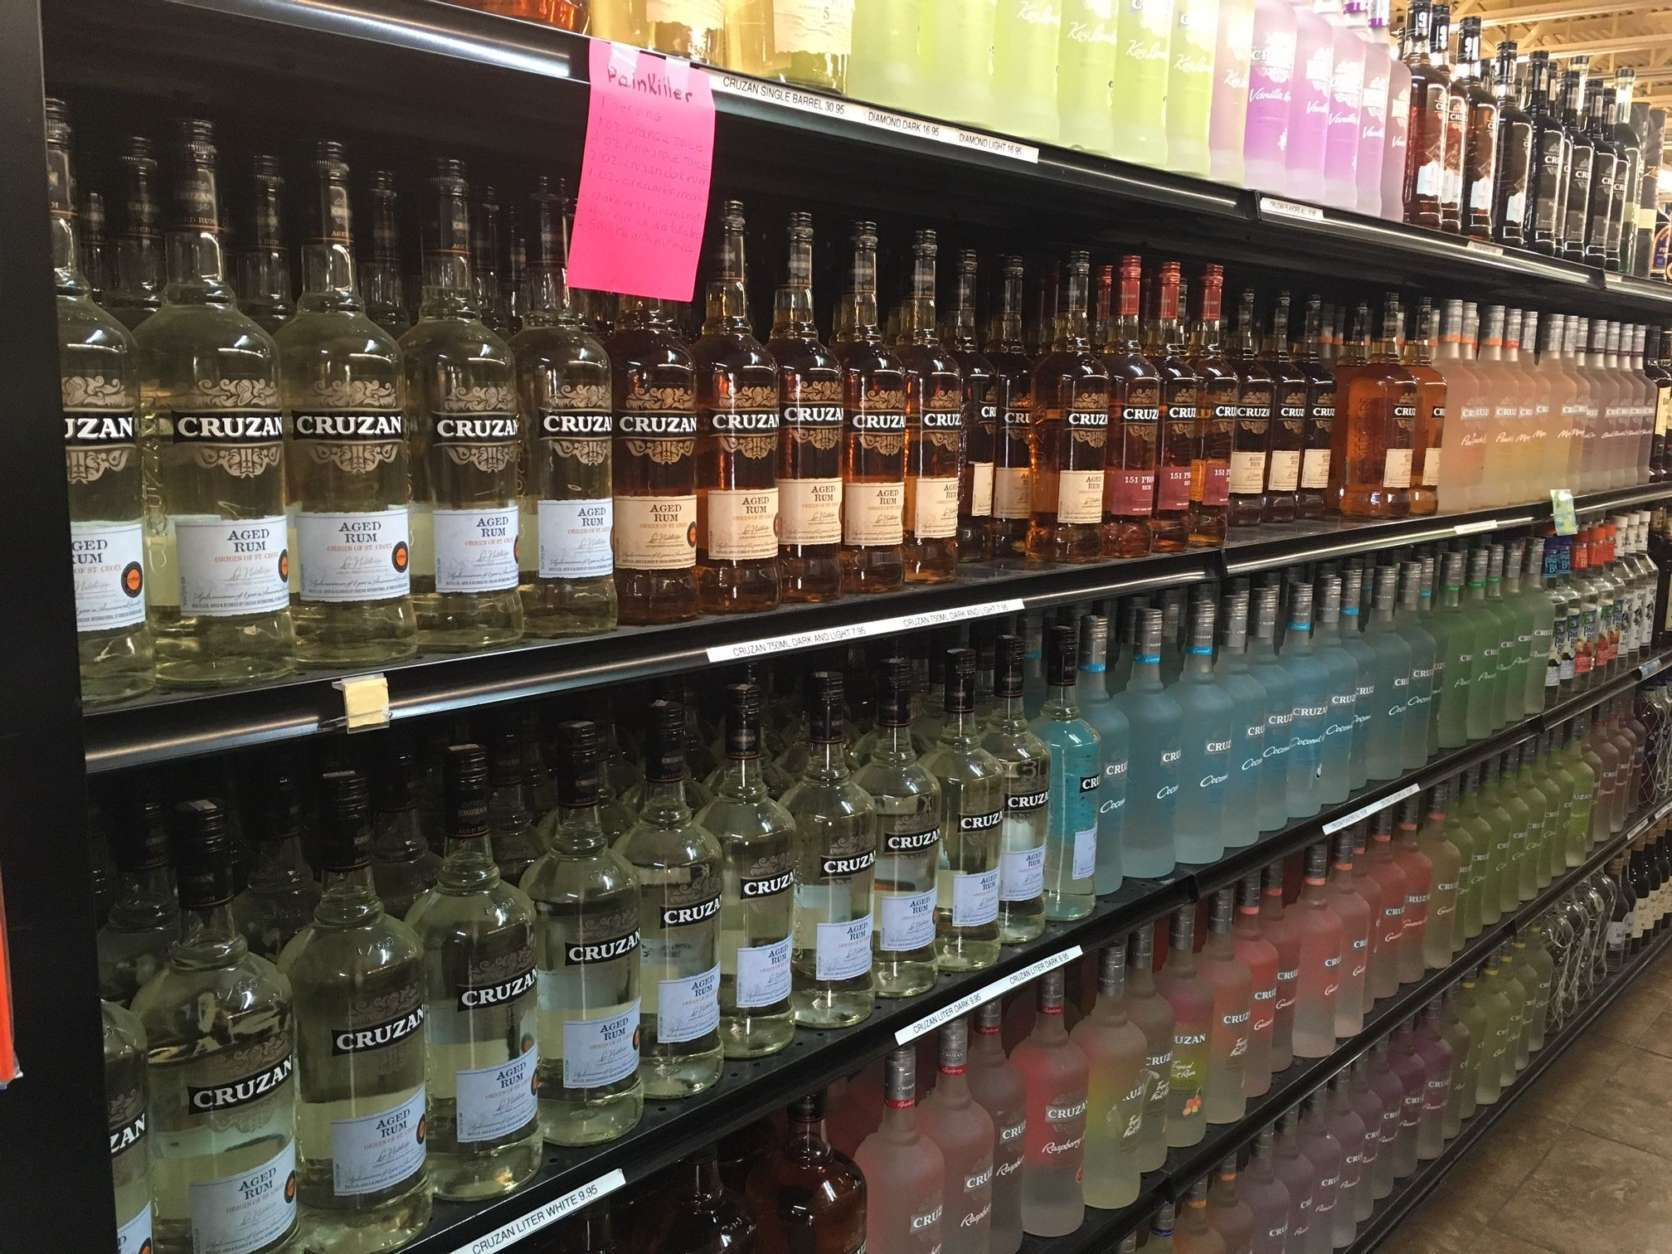 There is no shortage of any tropical islands' requisite rum. (WTOP/Jeff Clabaugh)